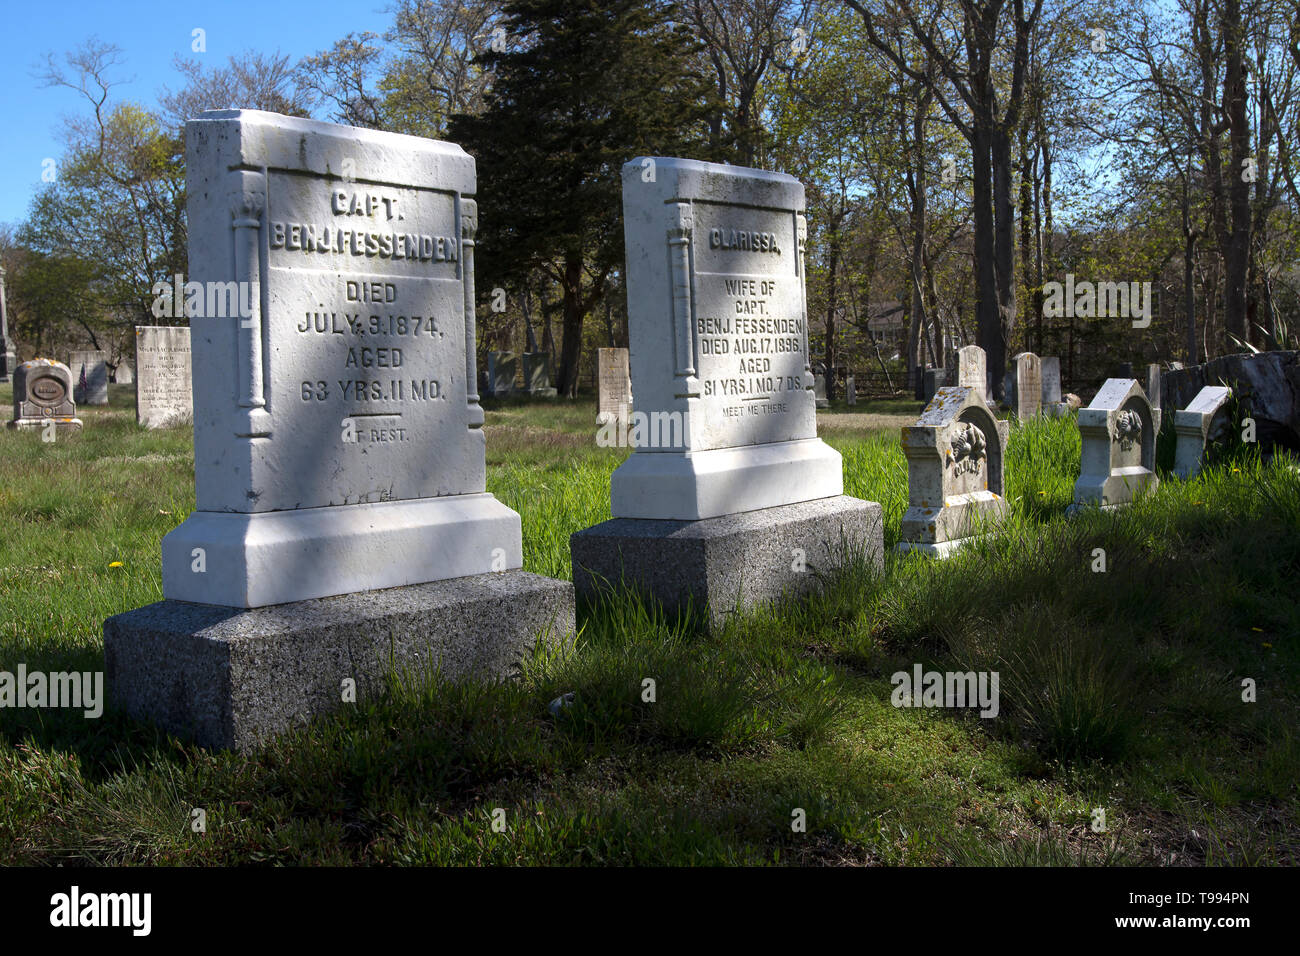 The grave of a sea captain and his wife in Brewster, Massachusetts, USA - Stock Image